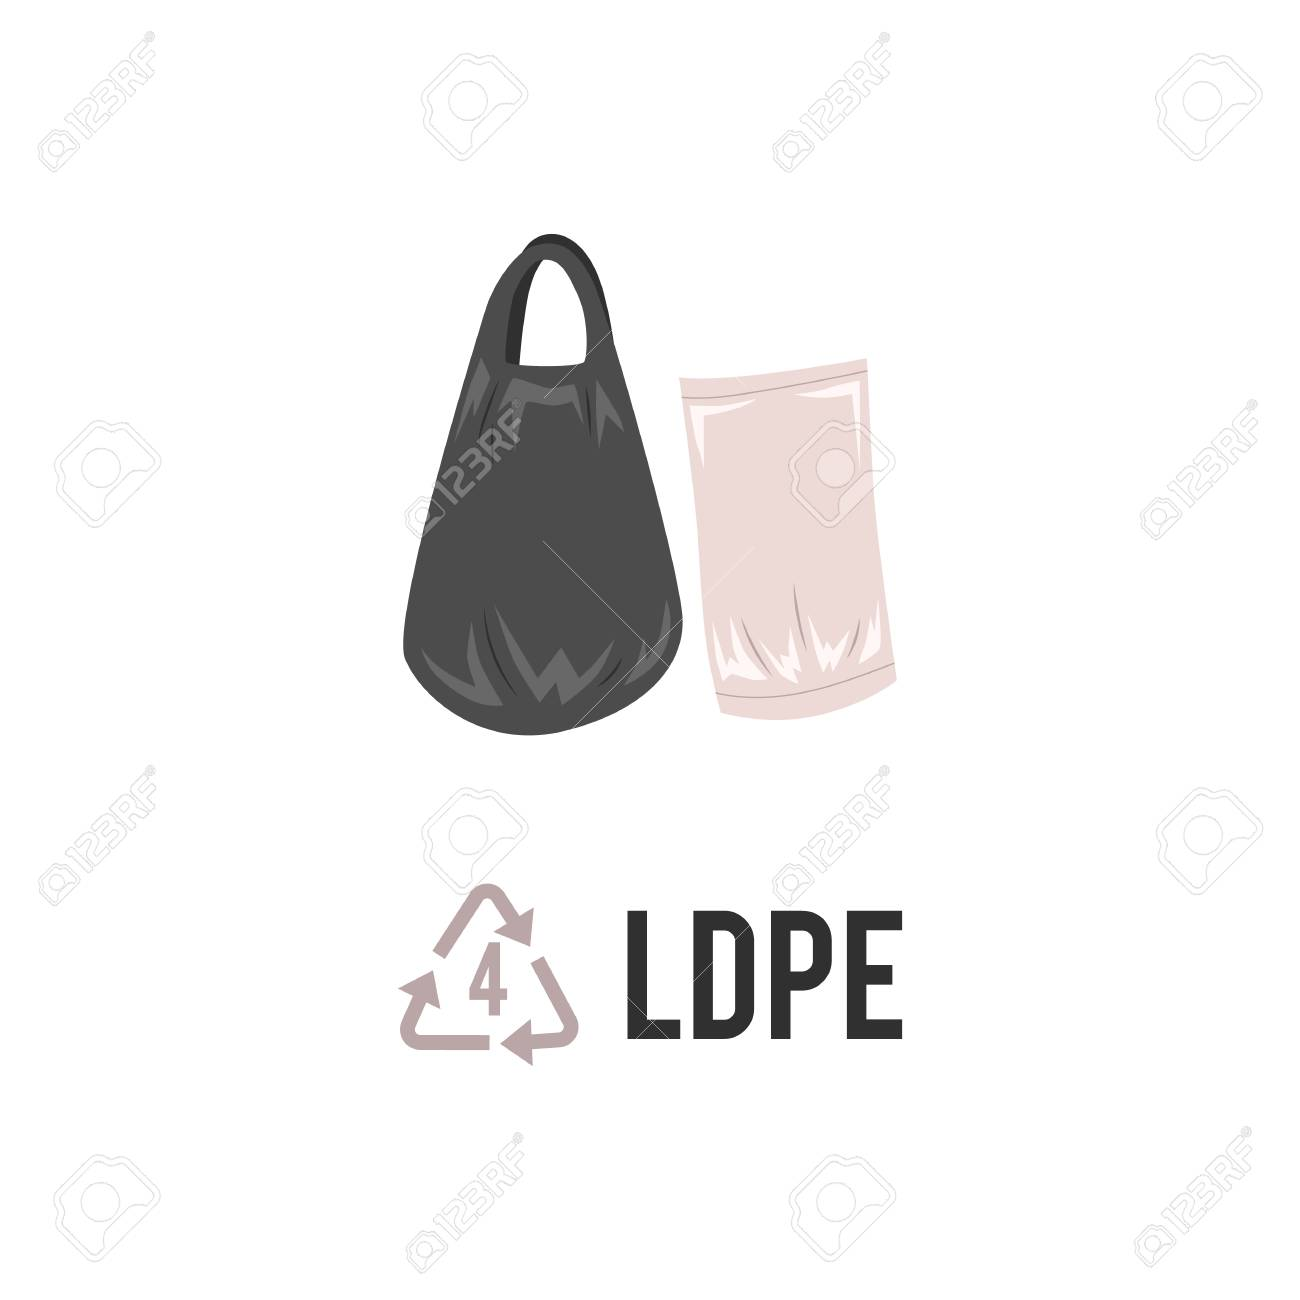 New Ldpe Projects